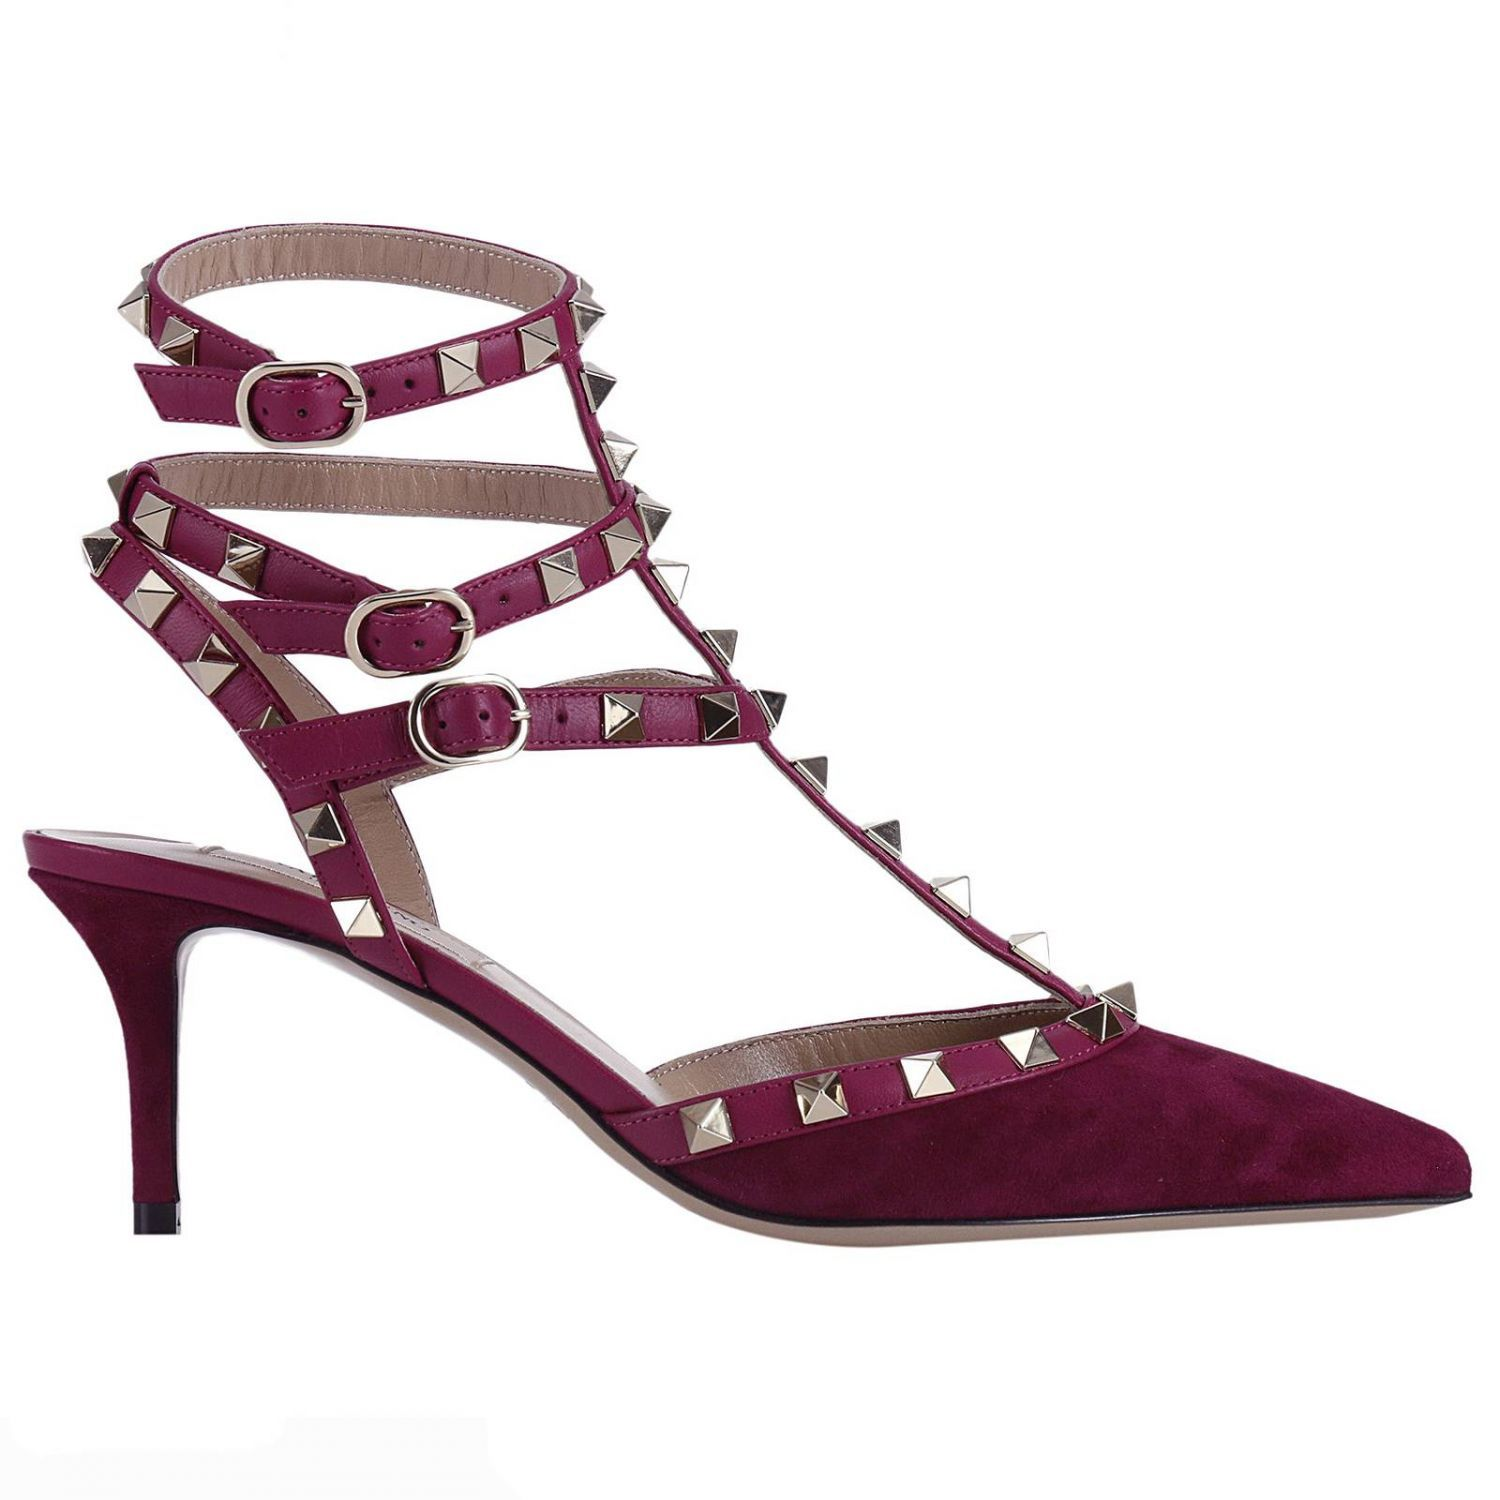 Pumps Rockstud Ankle Strap In Suede With Mini Heel And Metal Studs